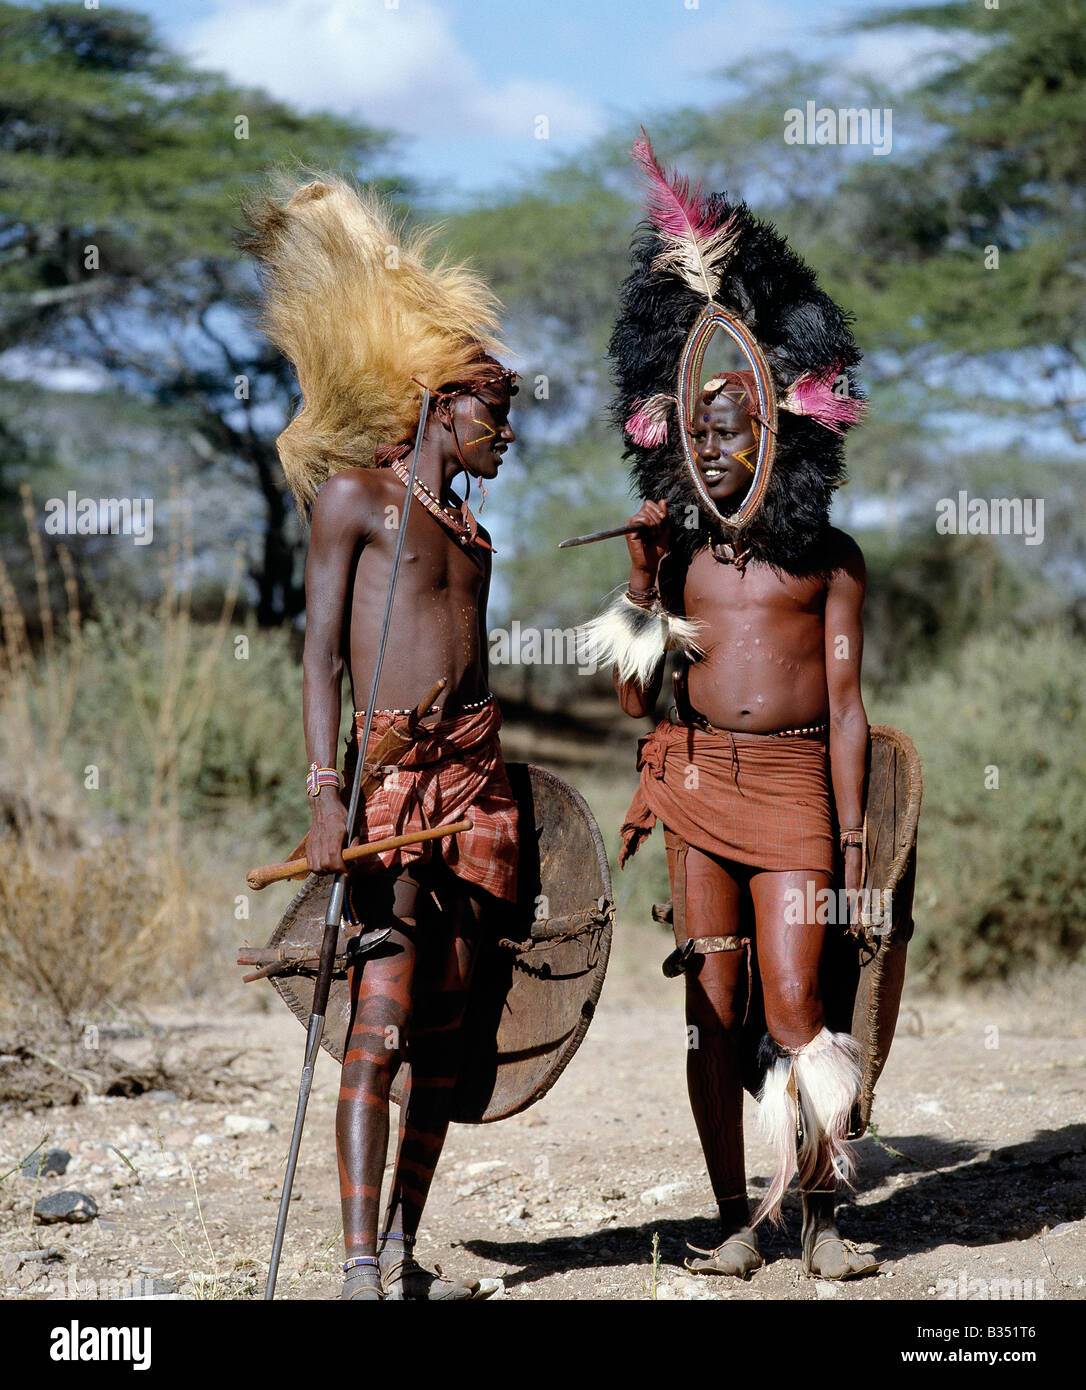 Kenya, kajiado, Ilpartimaro. Two Maasai warriors in full regalia. The headdress of the man on the left is made from - Stock Image